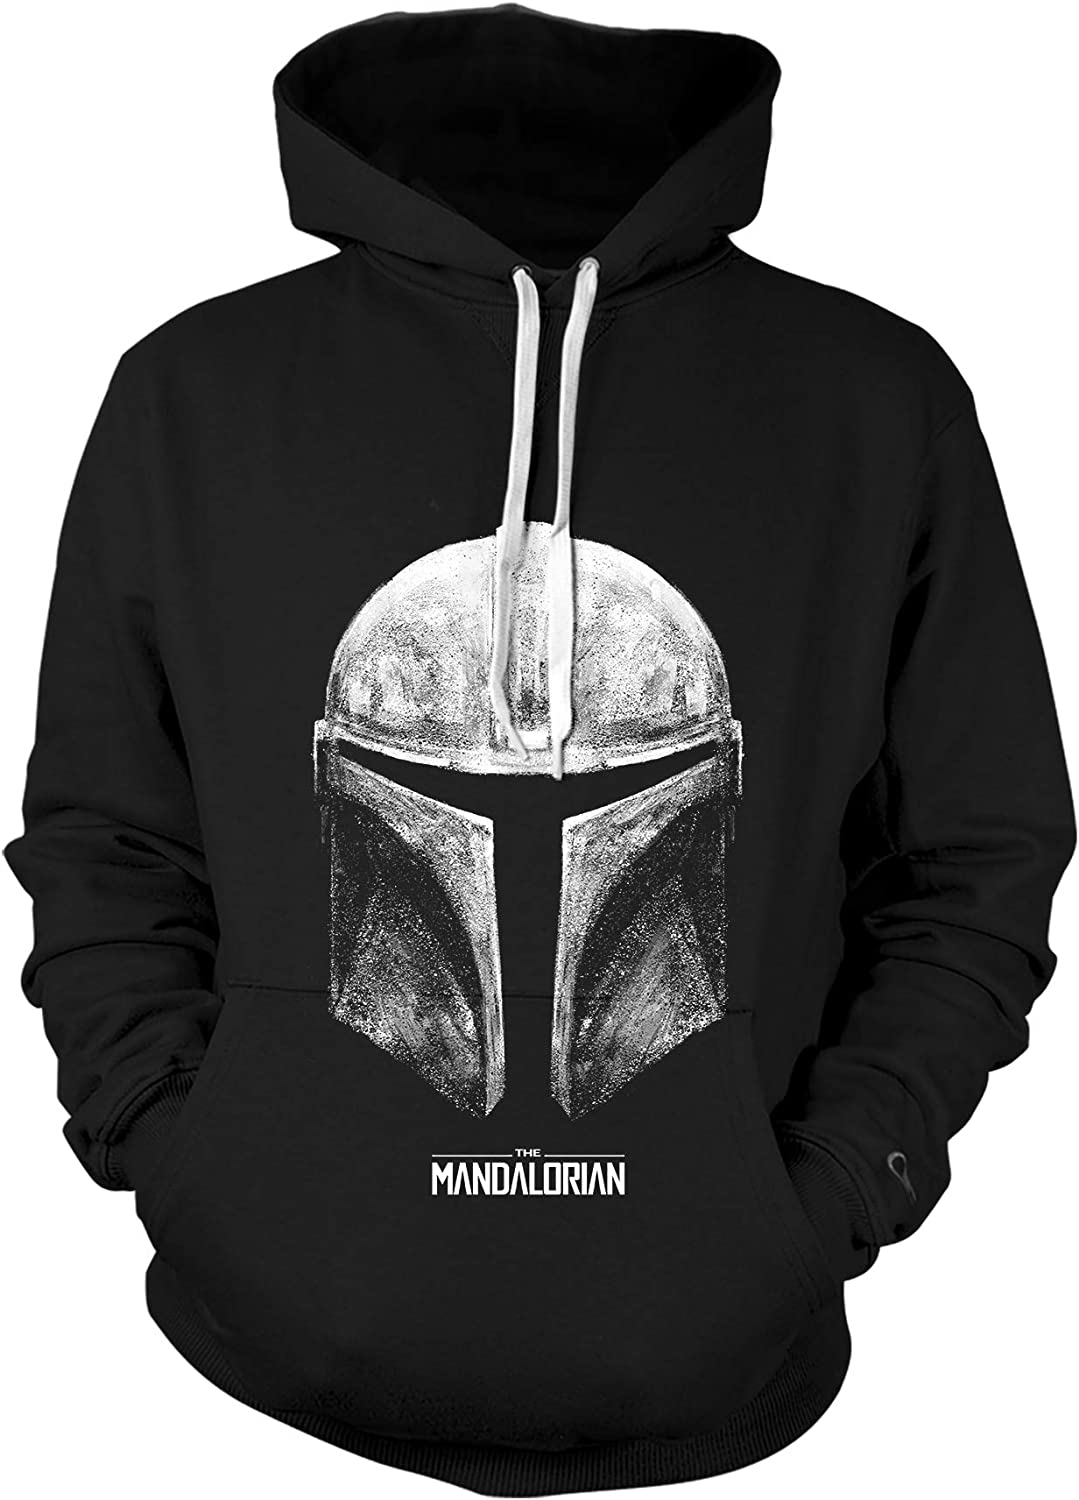 Unisex for adult 3d Printed Pullover Cartoon Hoodie Sweatshirt Cool Personality Gift